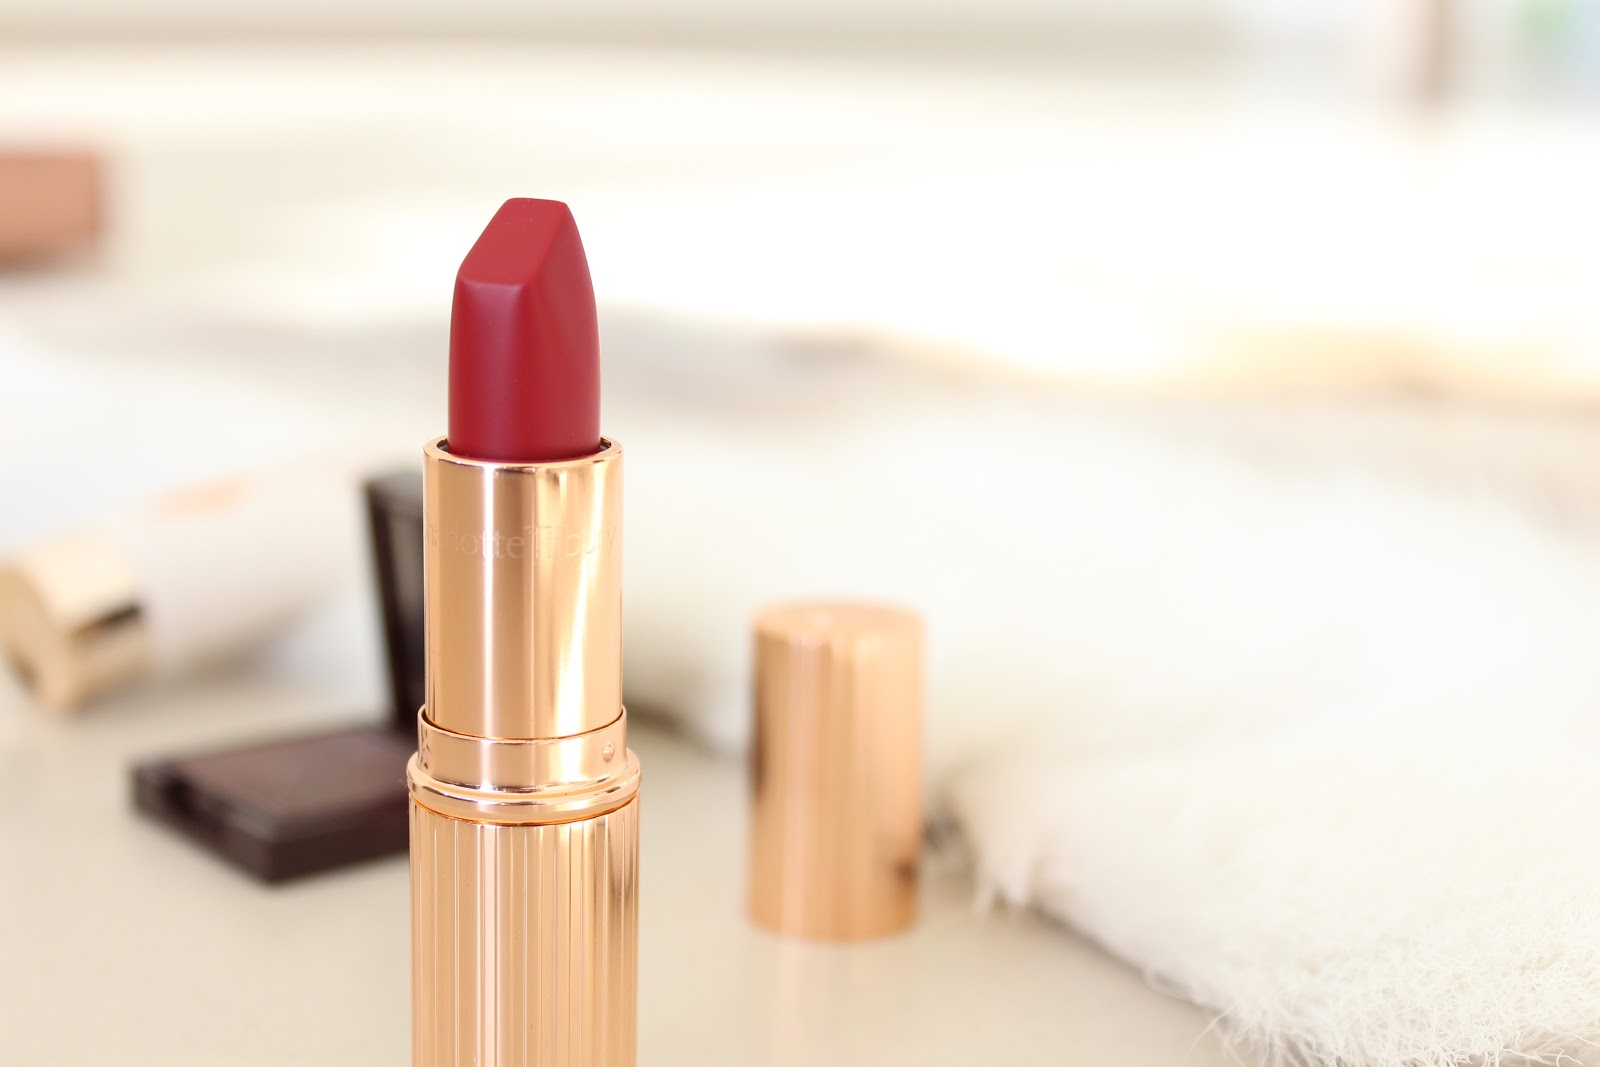 Charlotte Tilbury Red Carpet Red Lipstick Review and Swatches